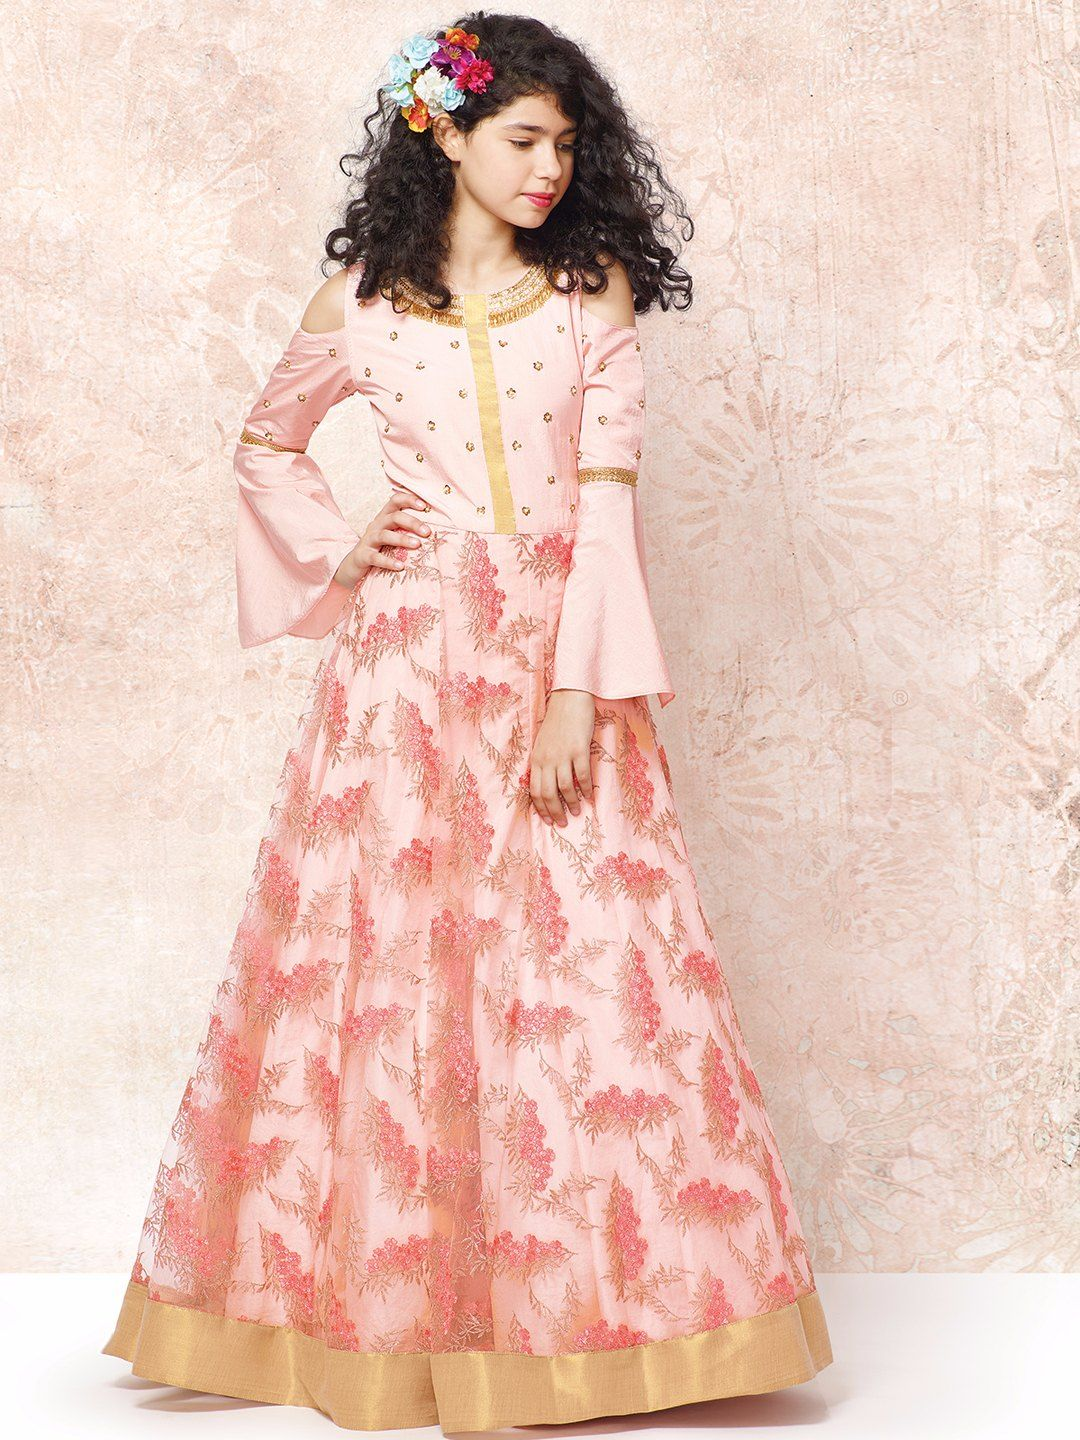 6870a0b064 Shop Peach designer net party wear gown online from G3fashion India. Brand  - G3, Product code - G3-GGO00094, Price - 4595, Color - Peach, Fabric - Net,